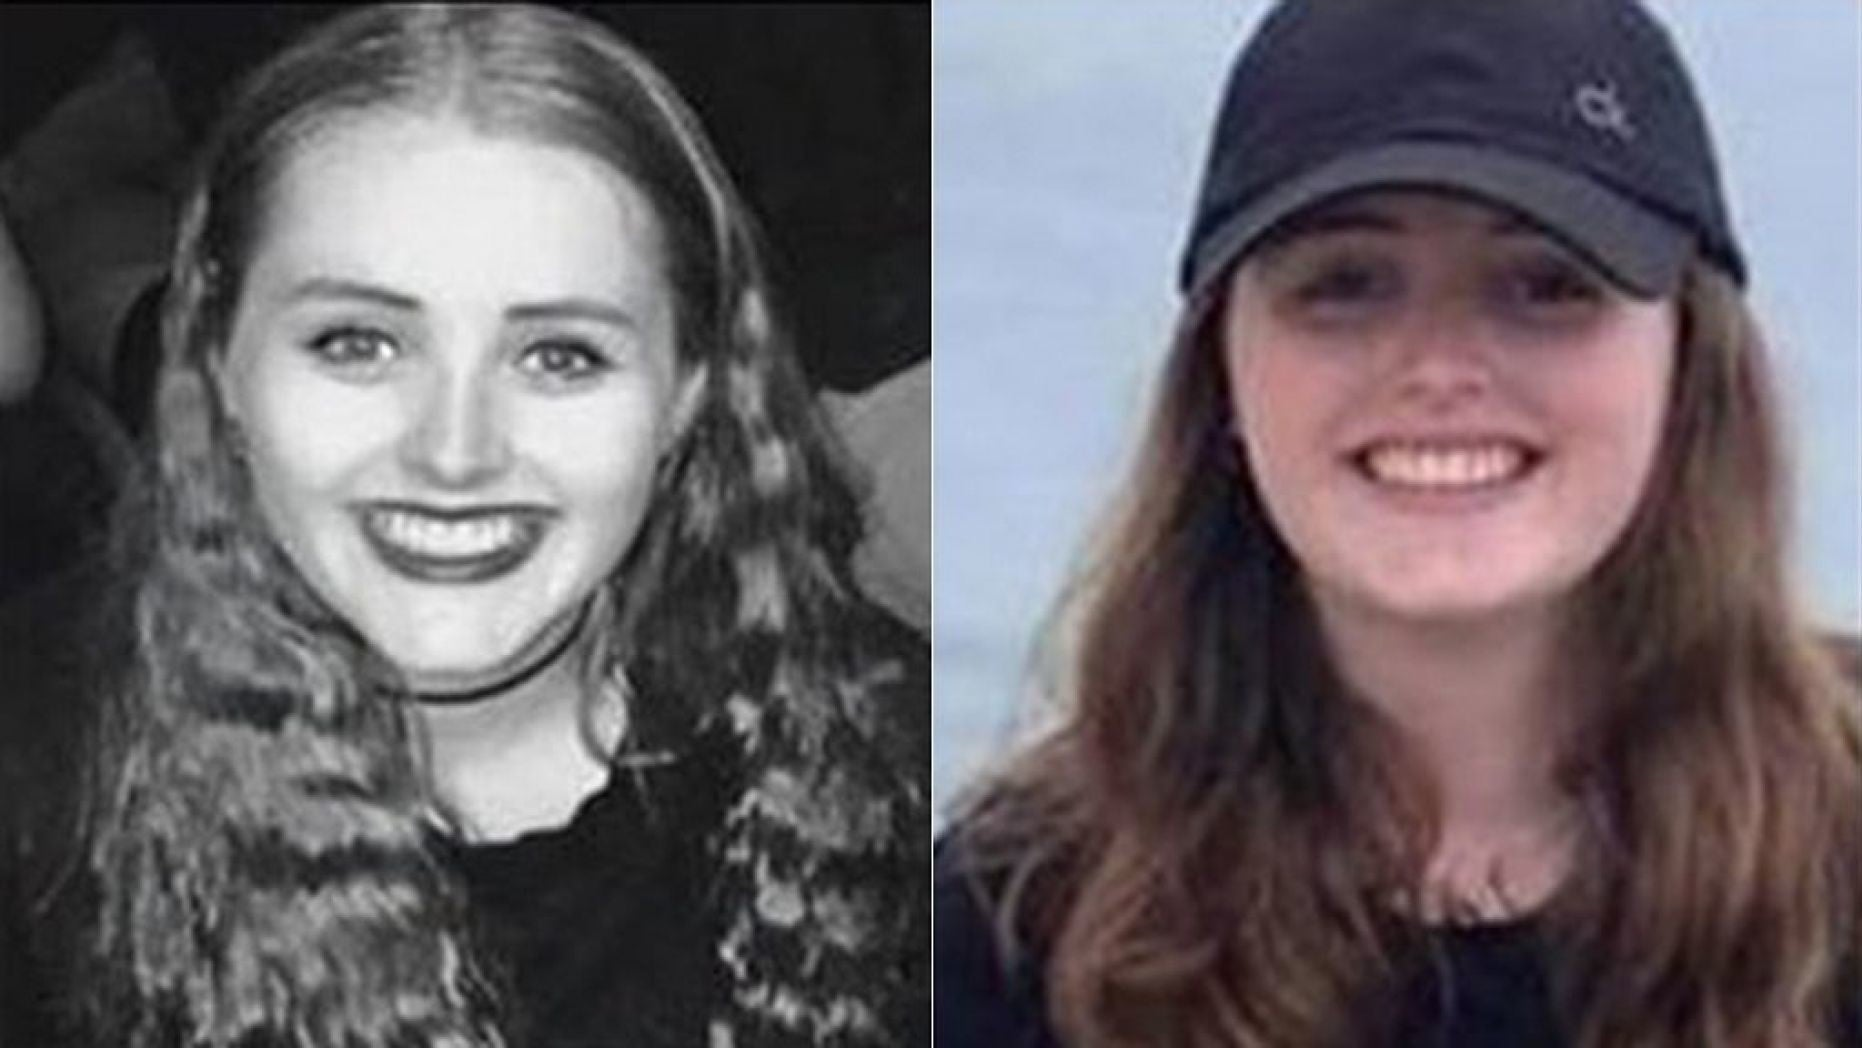 Missing British backpacker case is now a murder investigation in New Zealand